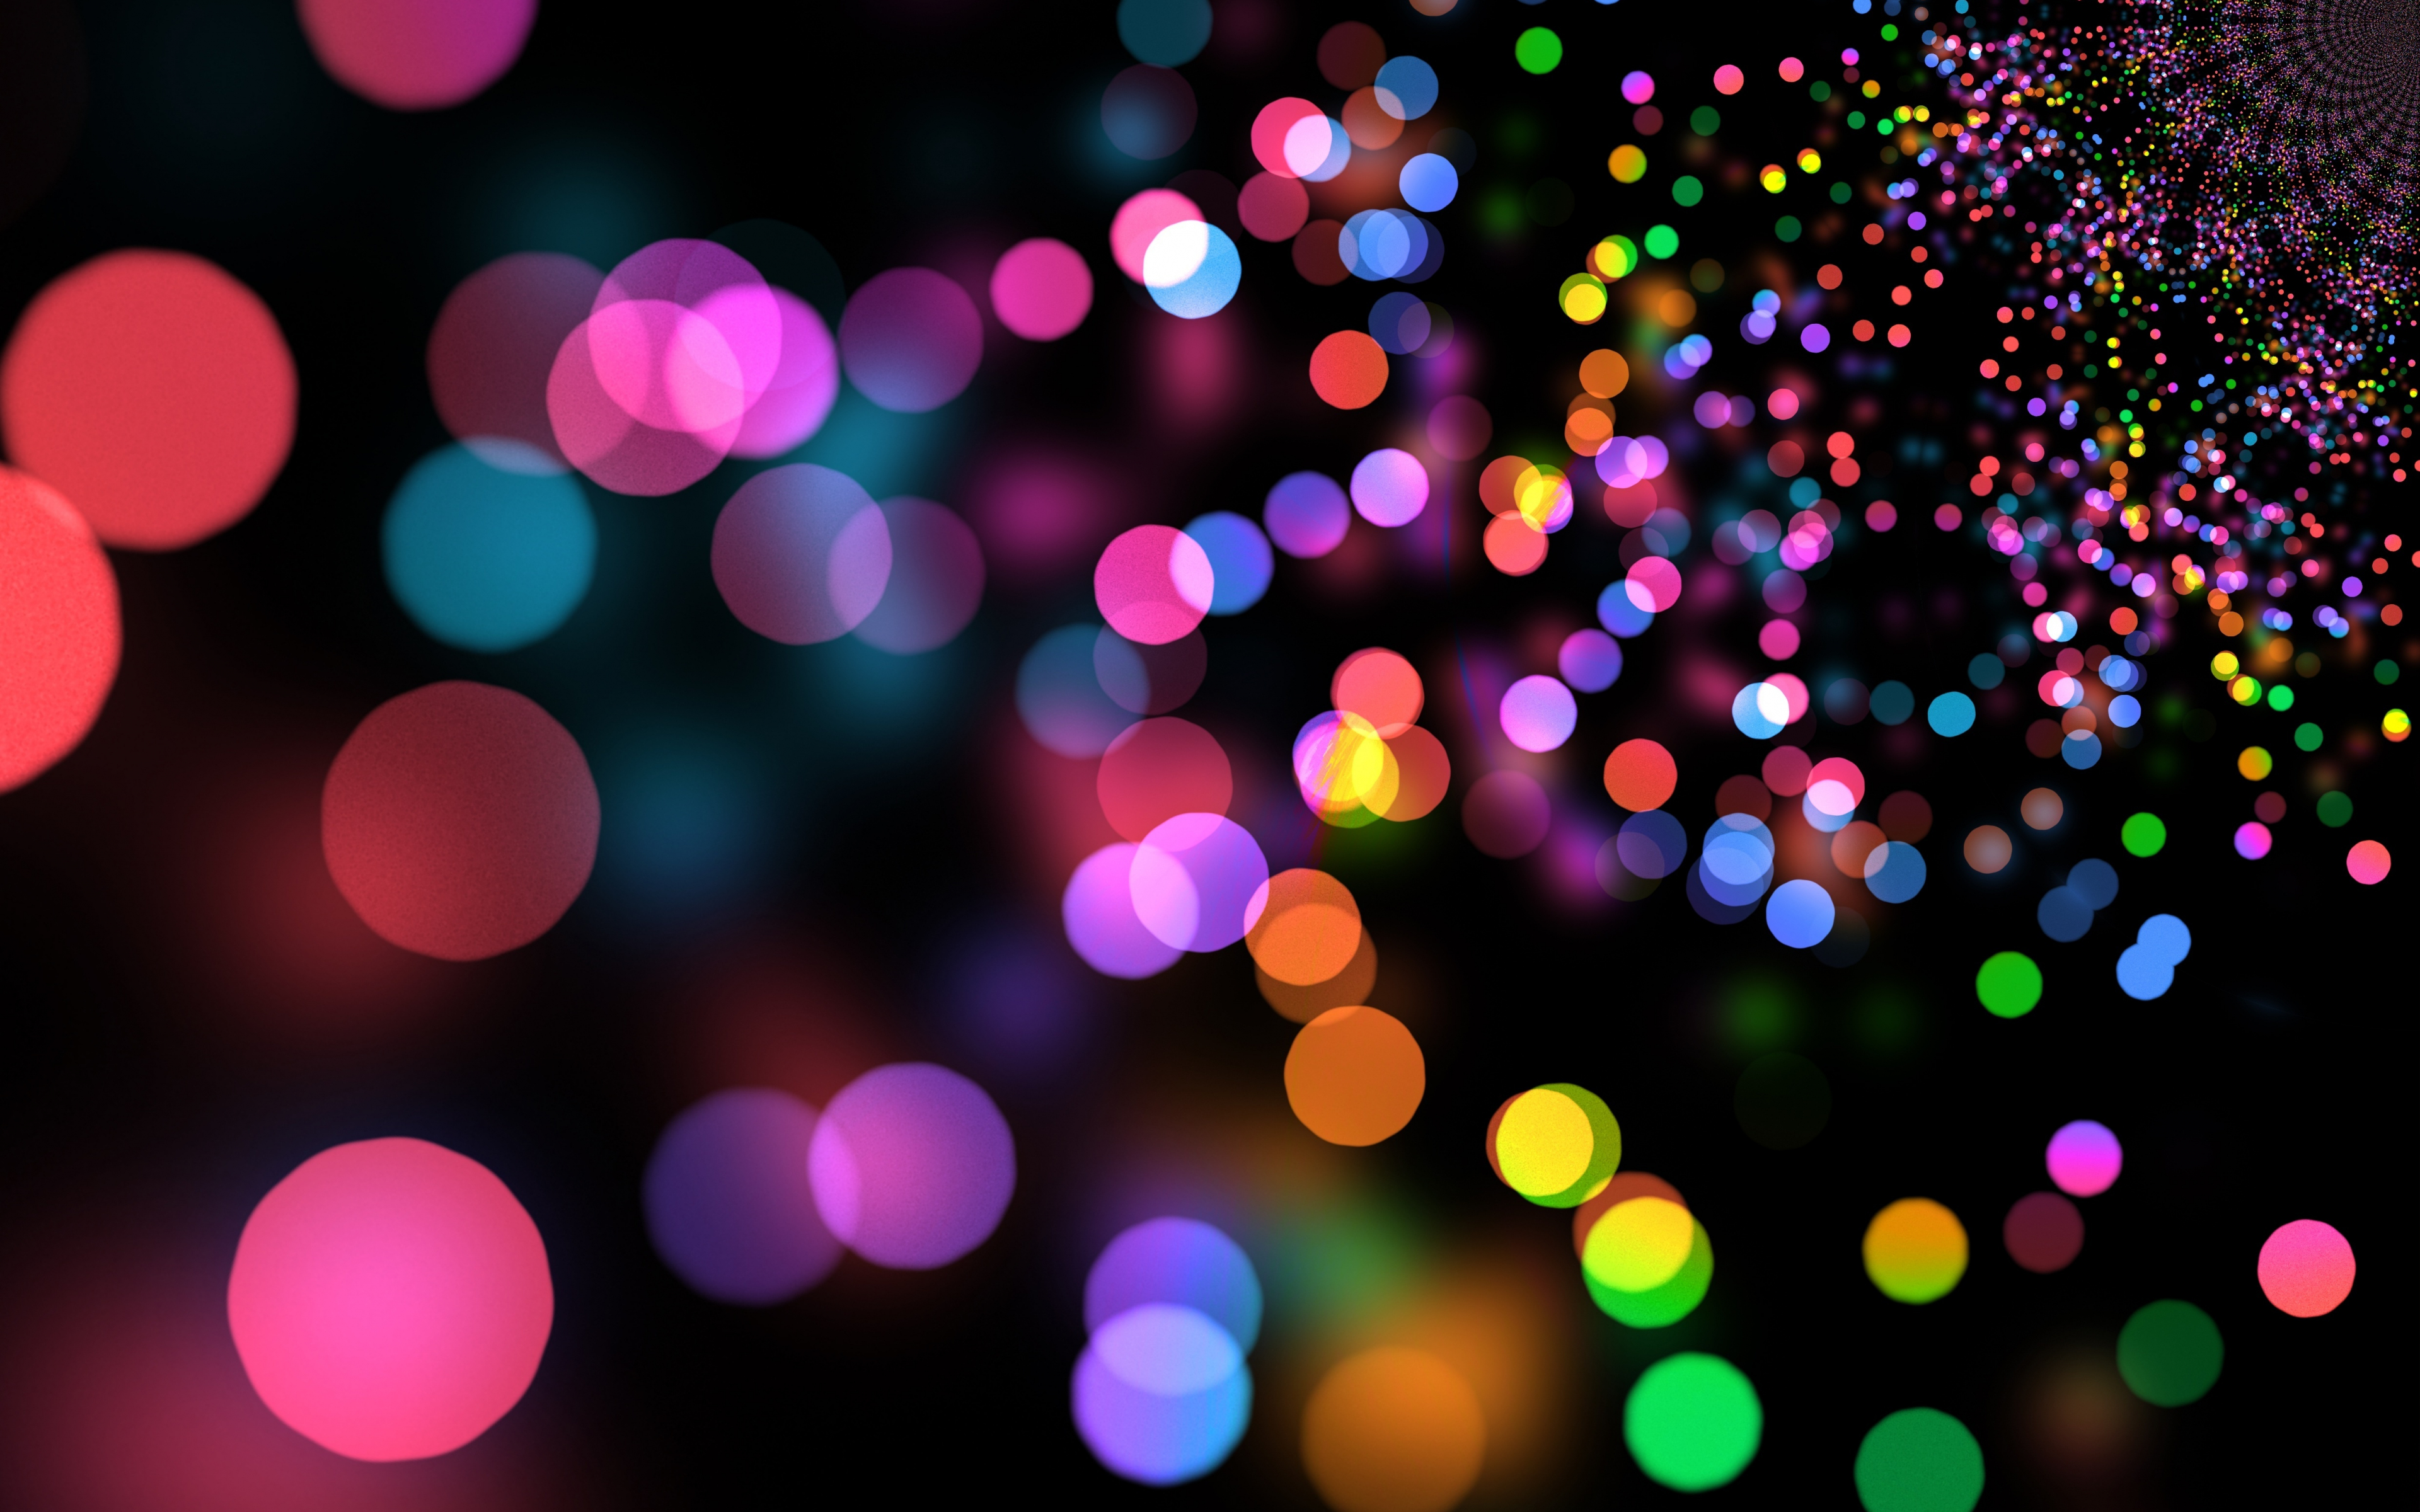 Wallpaper 4k Samsung Galaxy S8 Girls Download 3840x2400 Wallpaper Party Lights Circles